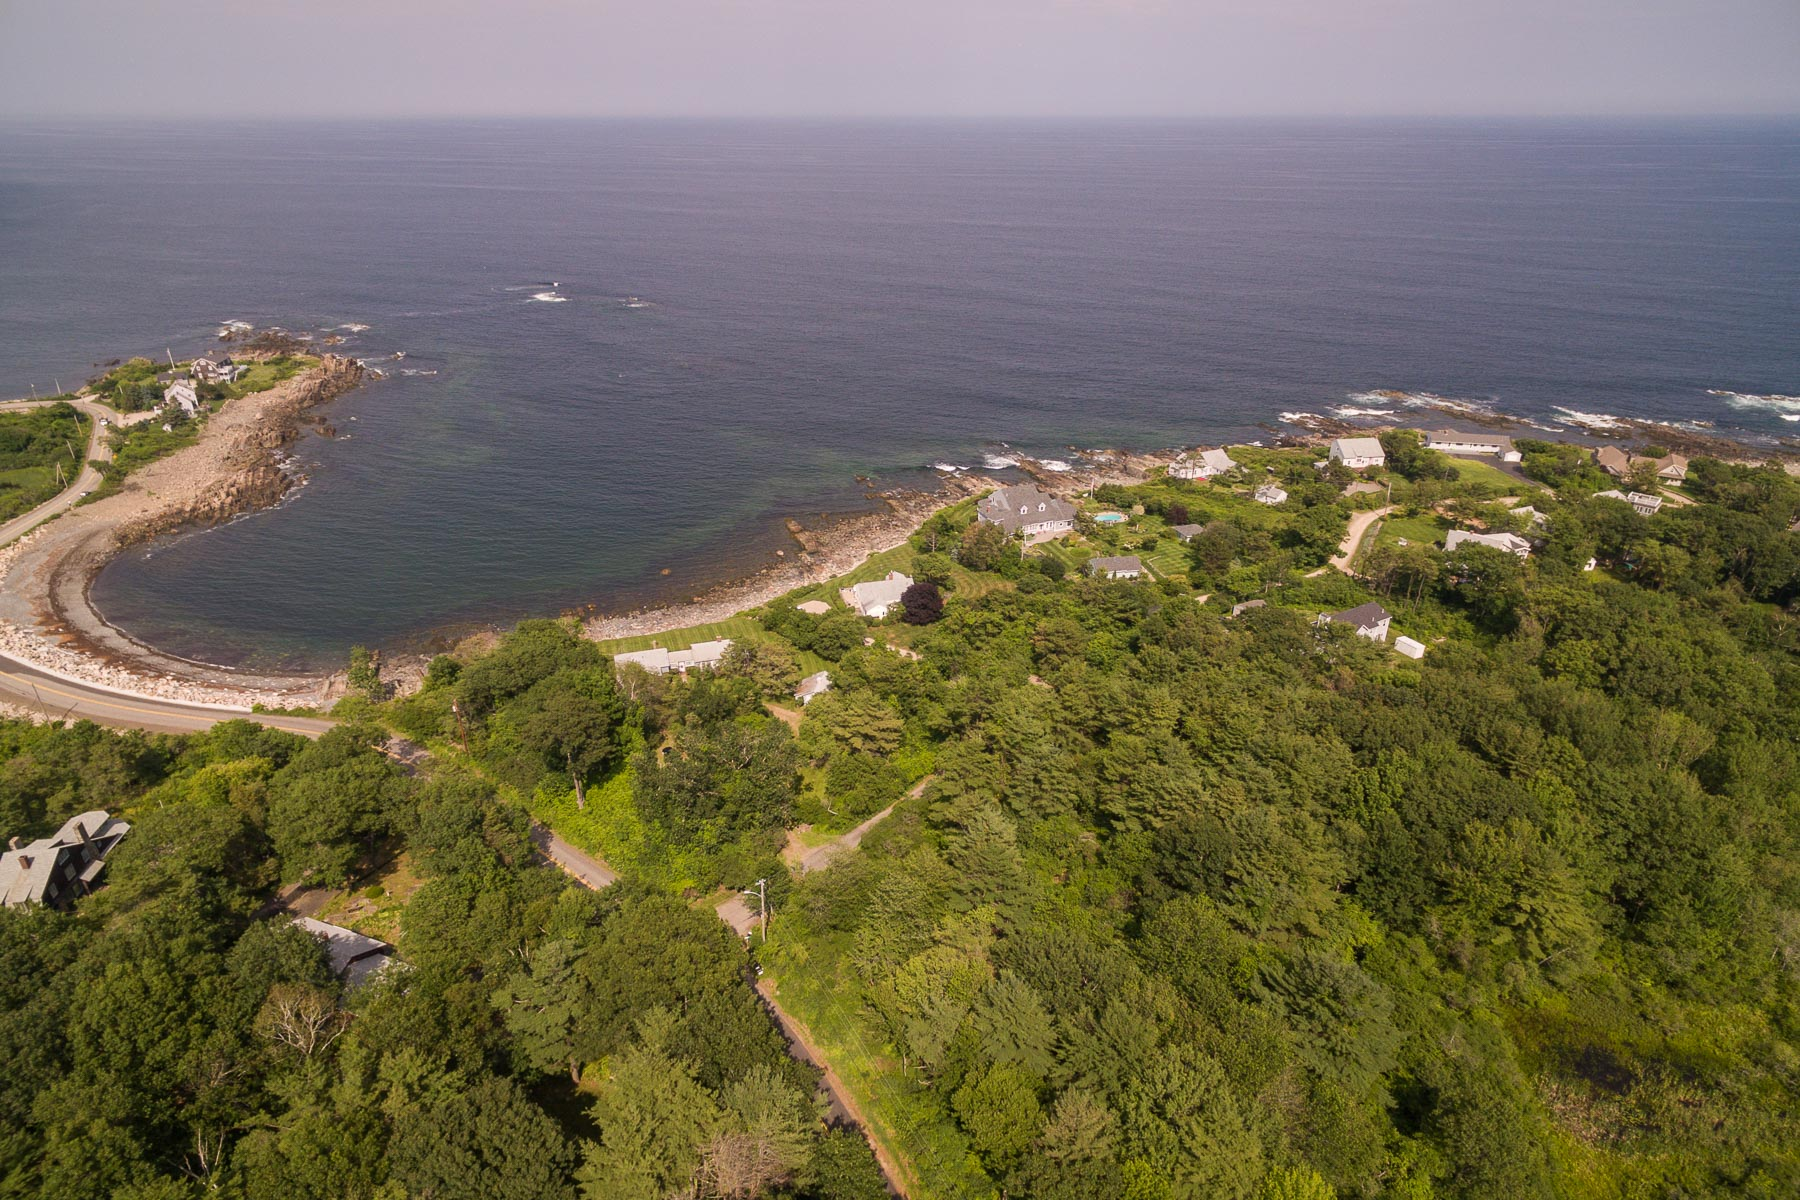 Land for Sale at Great Shore Road Location 271 Shore Road Cape Neddick, Maine 03902 United States